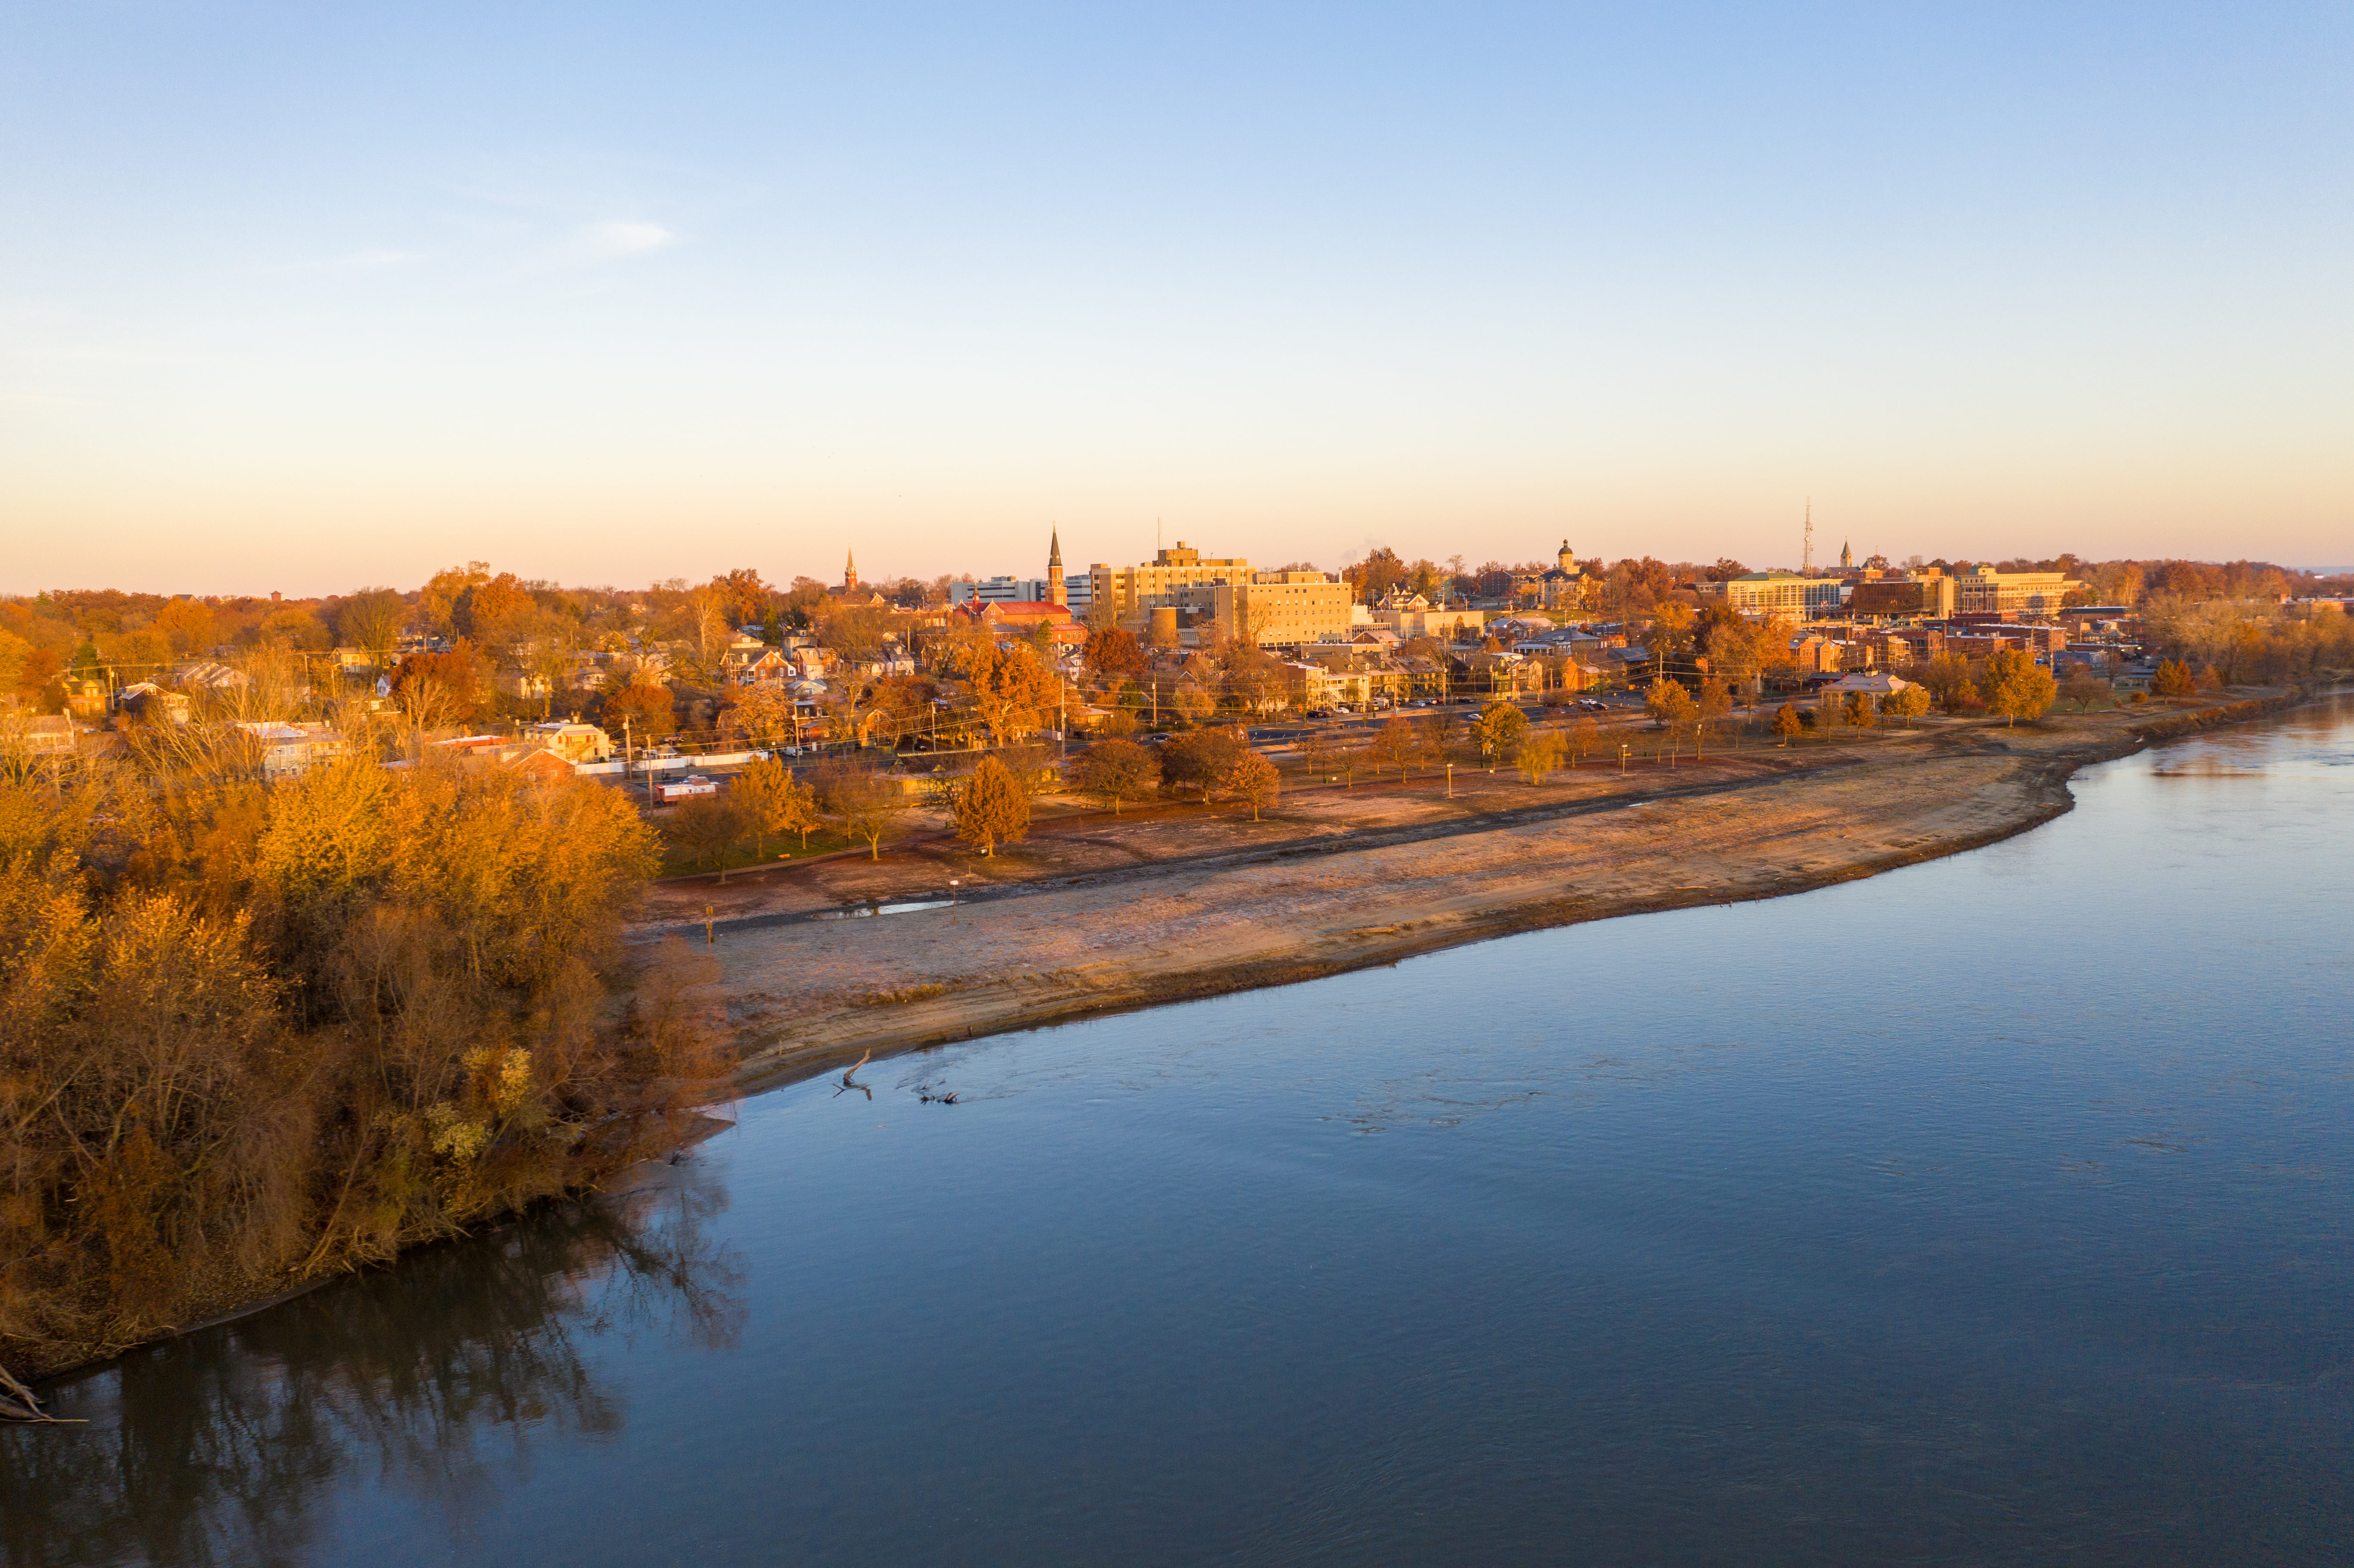 St. Charles Private Jet and Air Charter Flights